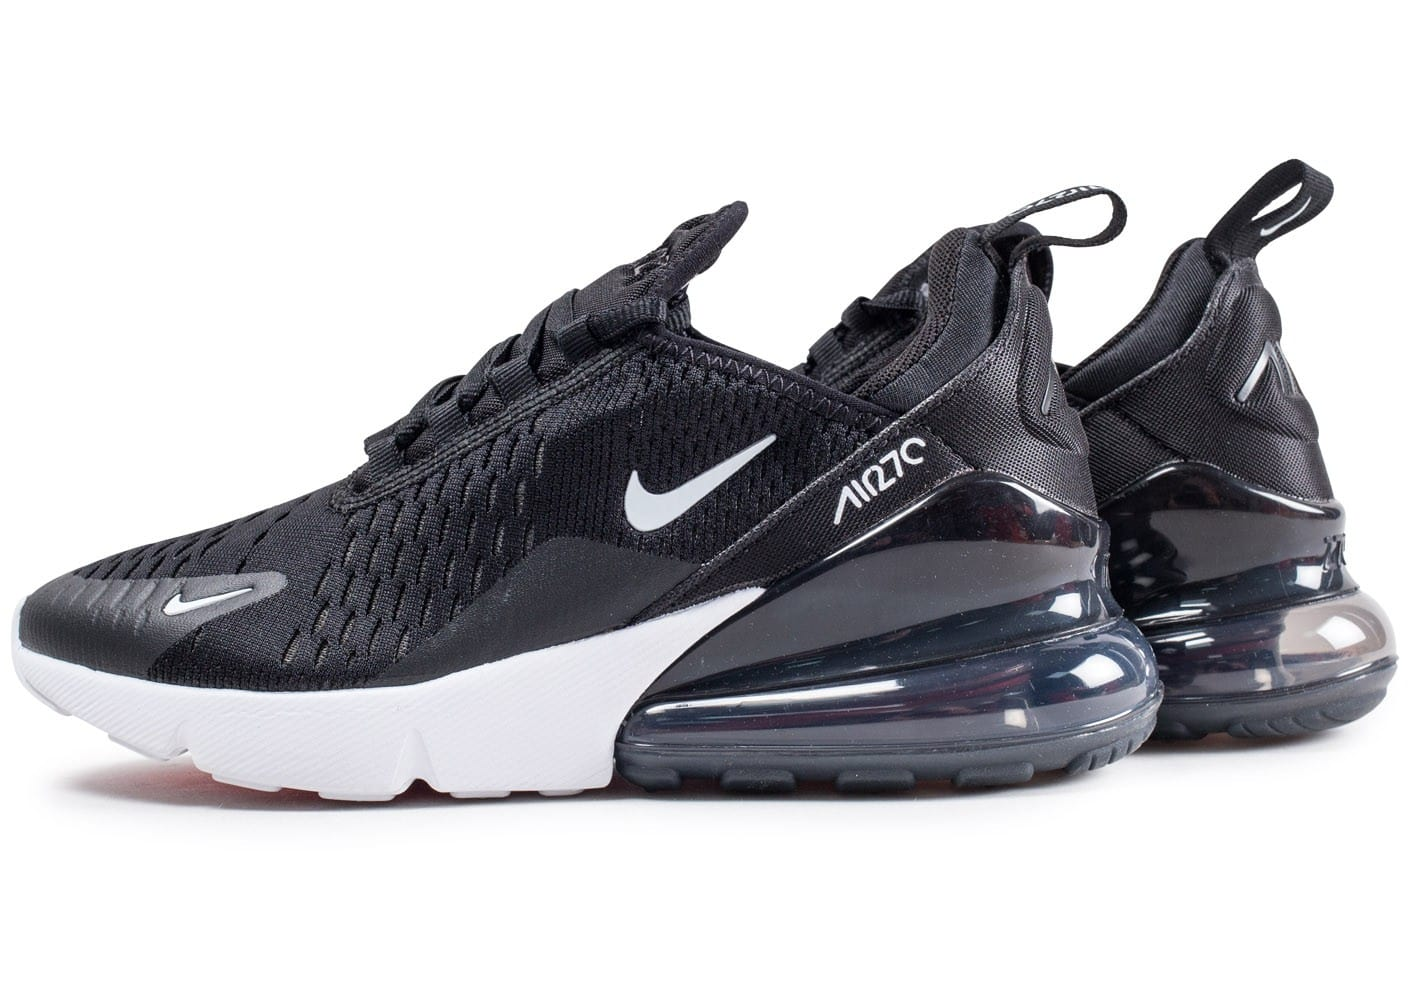 nike air max 270 junior noire et blanche chaussures femme chausport. Black Bedroom Furniture Sets. Home Design Ideas